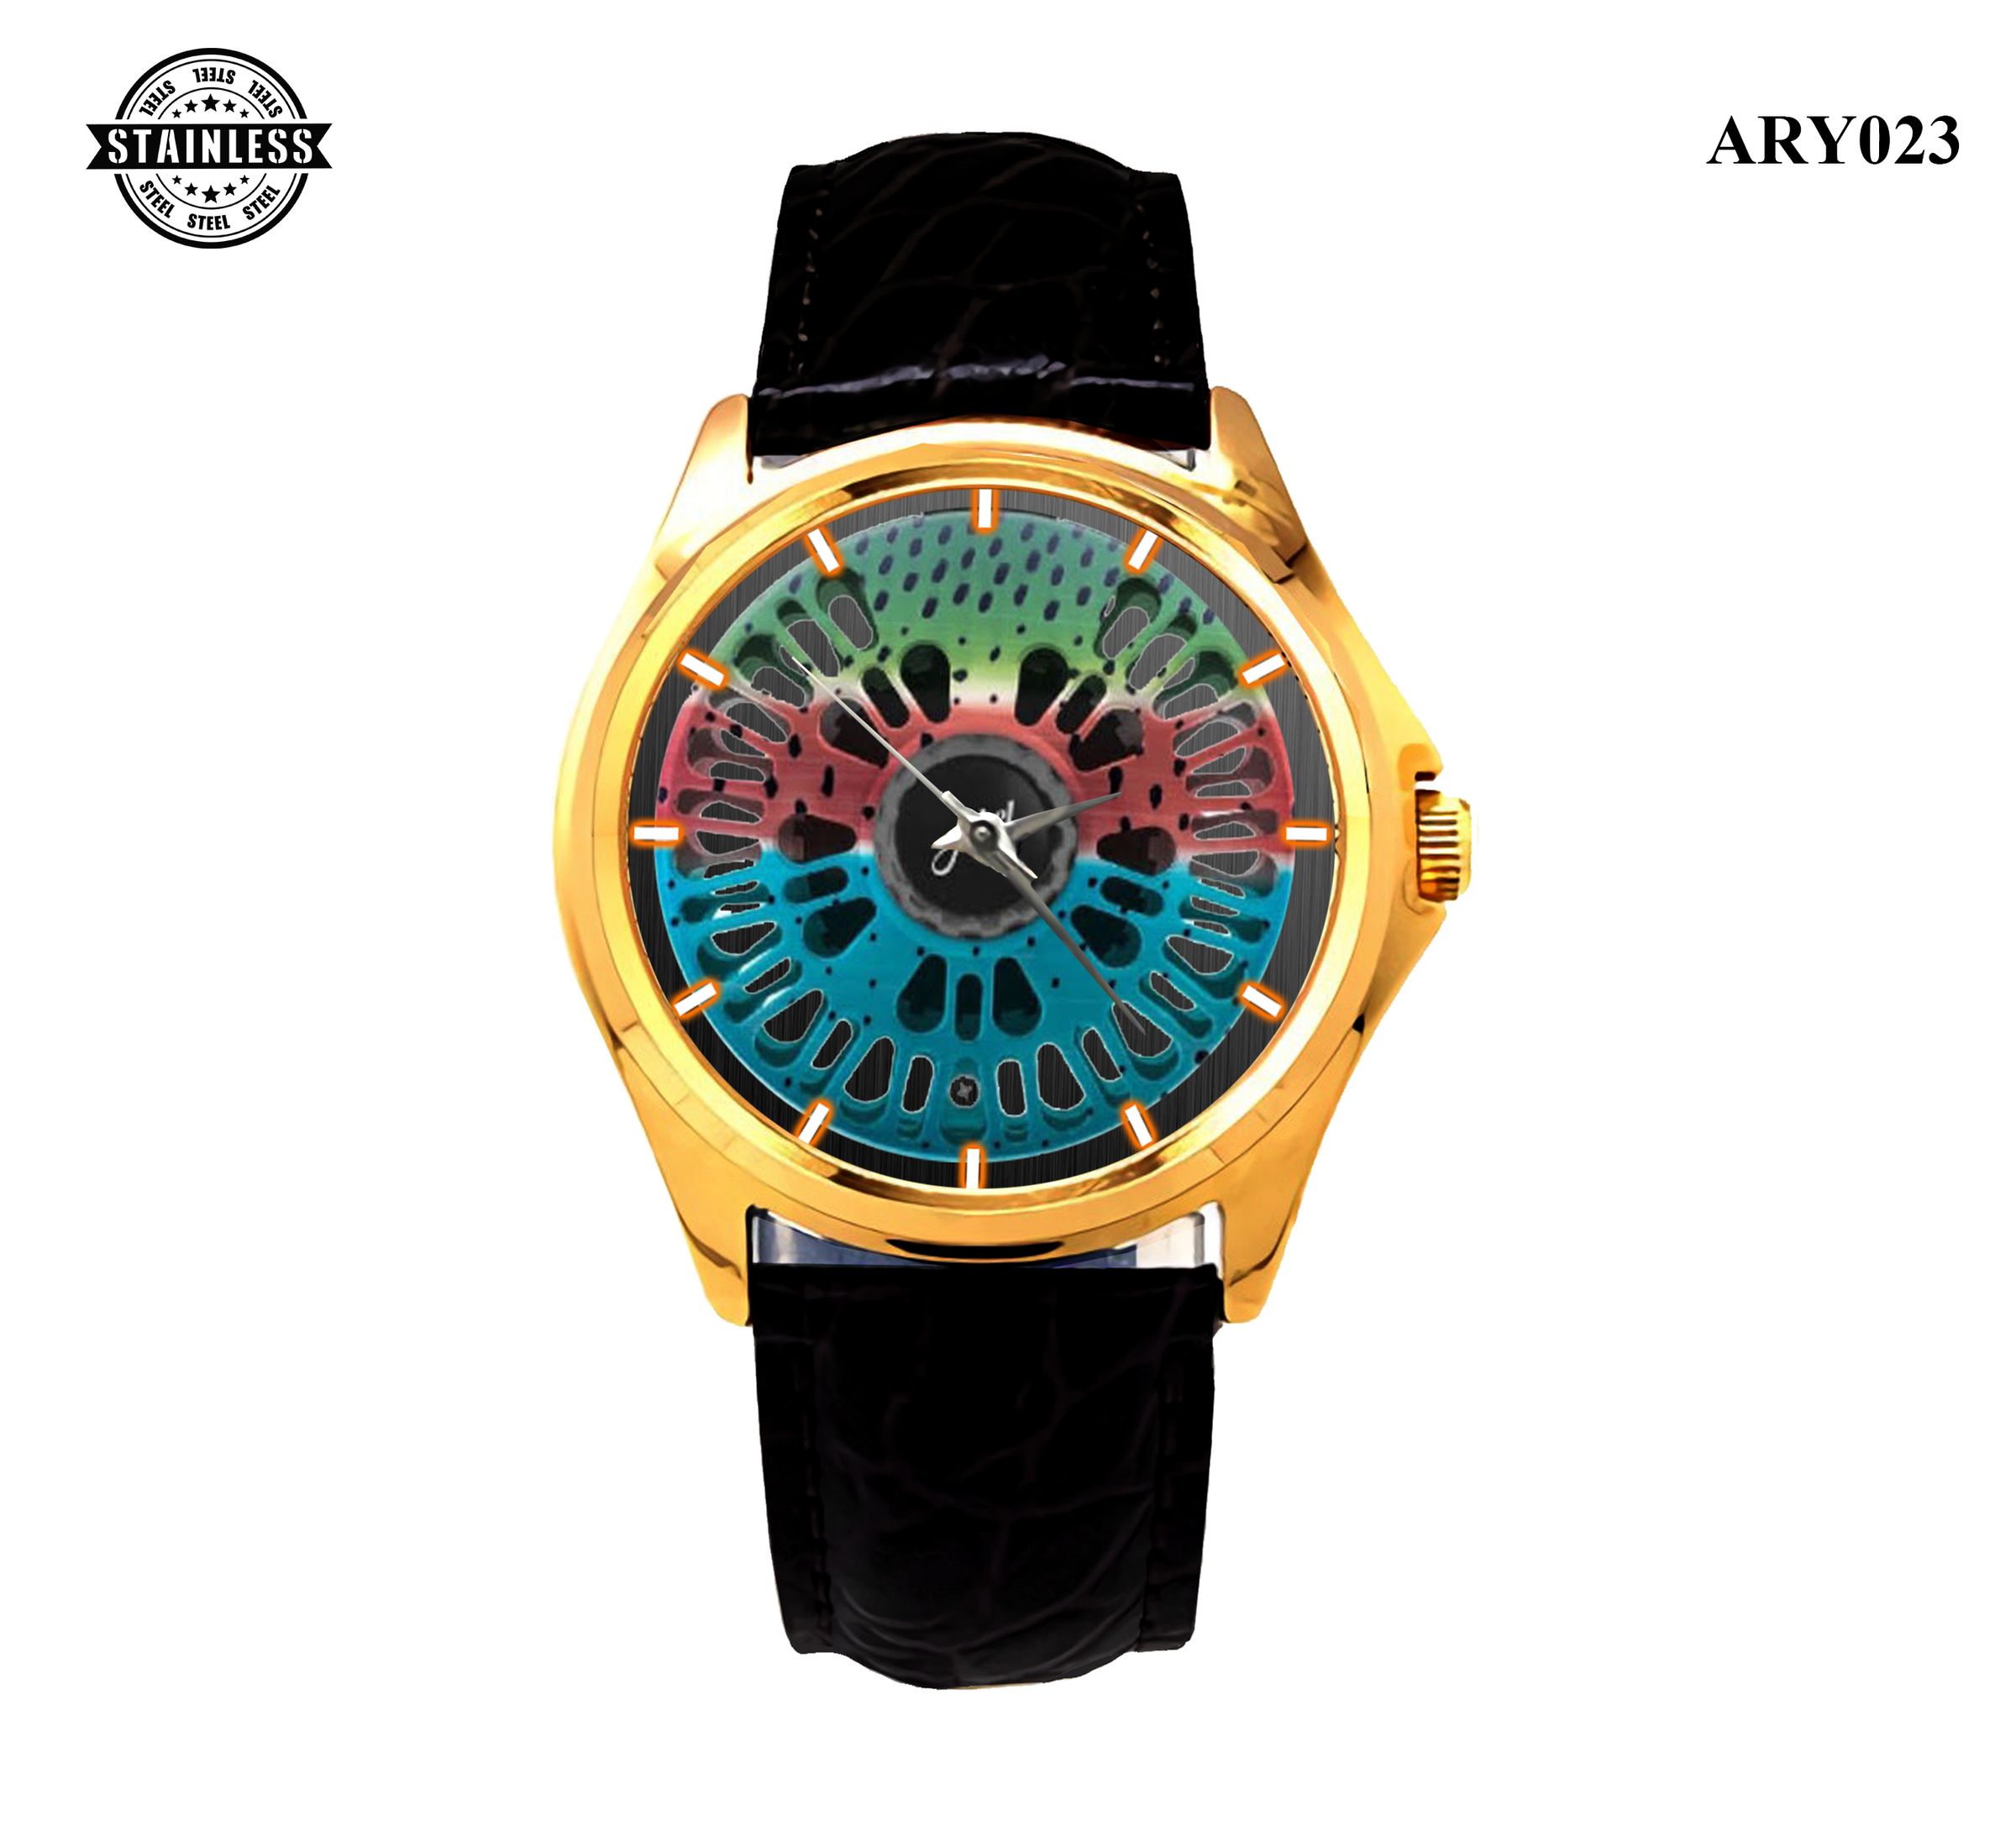 ARY023_2.Limited edition_Abel Super 5 Reel_Sport Metal Watches.jpg